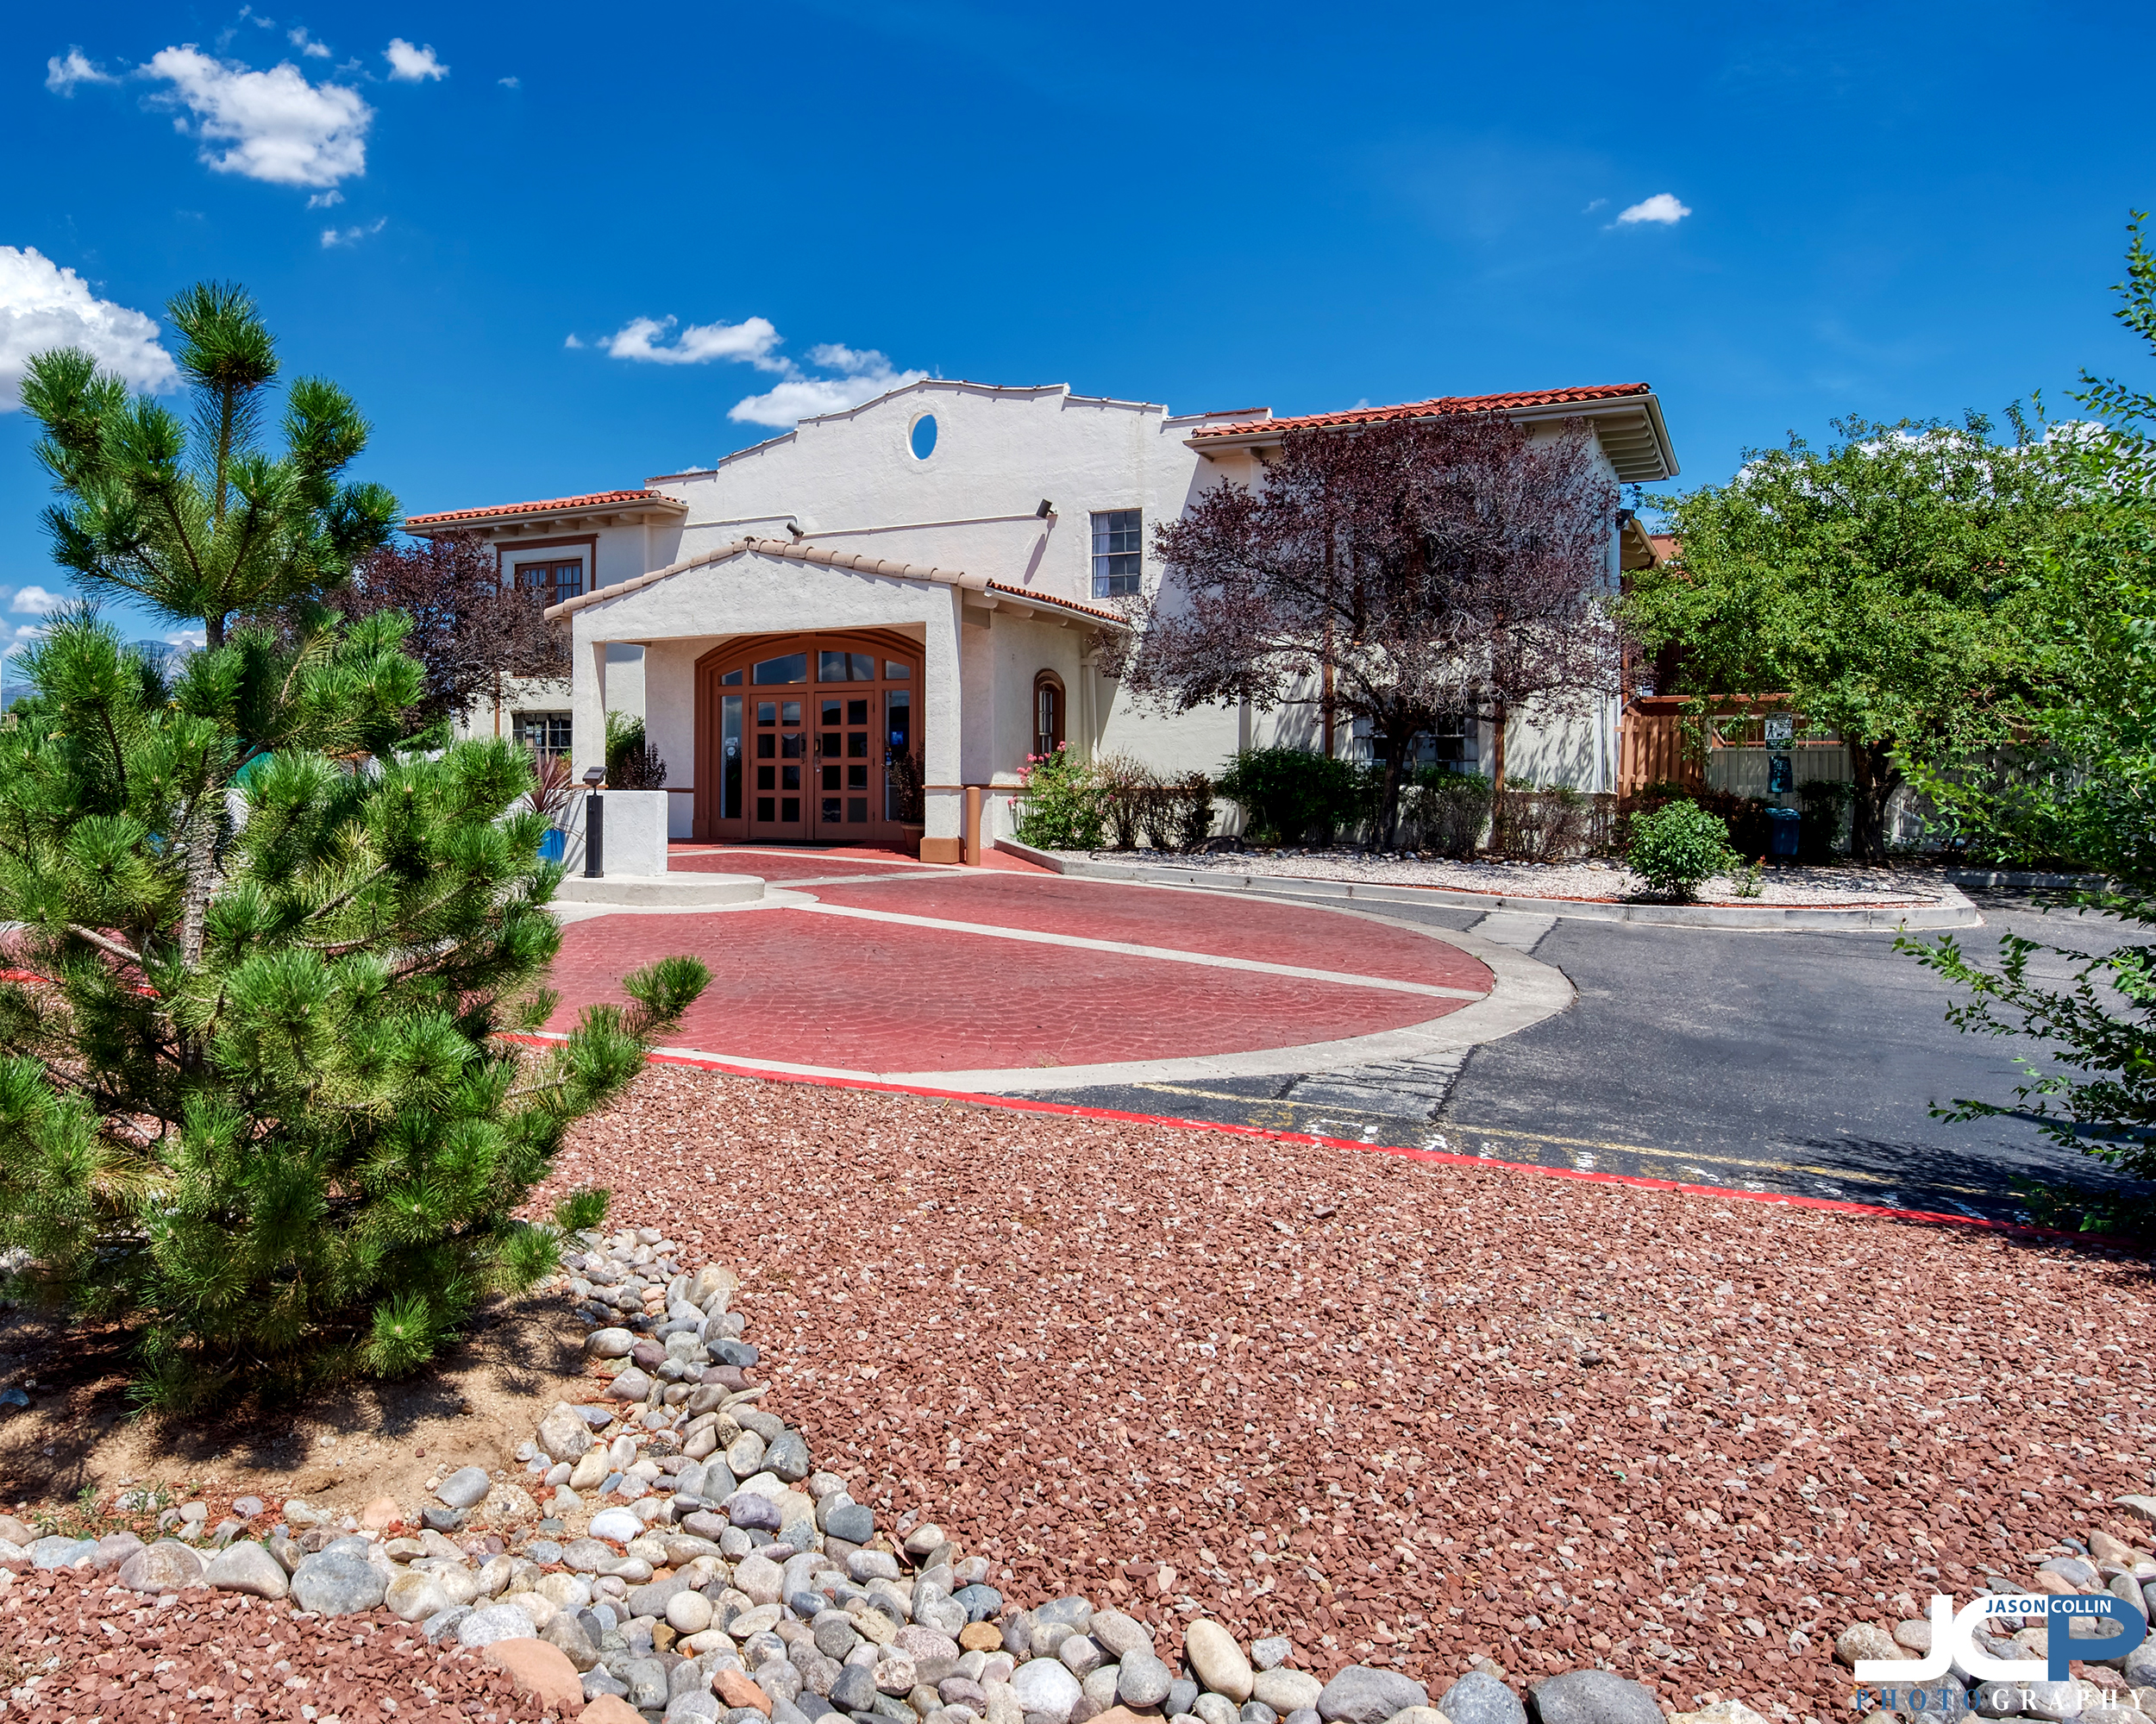 Using creative angles to best photograph a city hotel in Albuquerque New Mexico